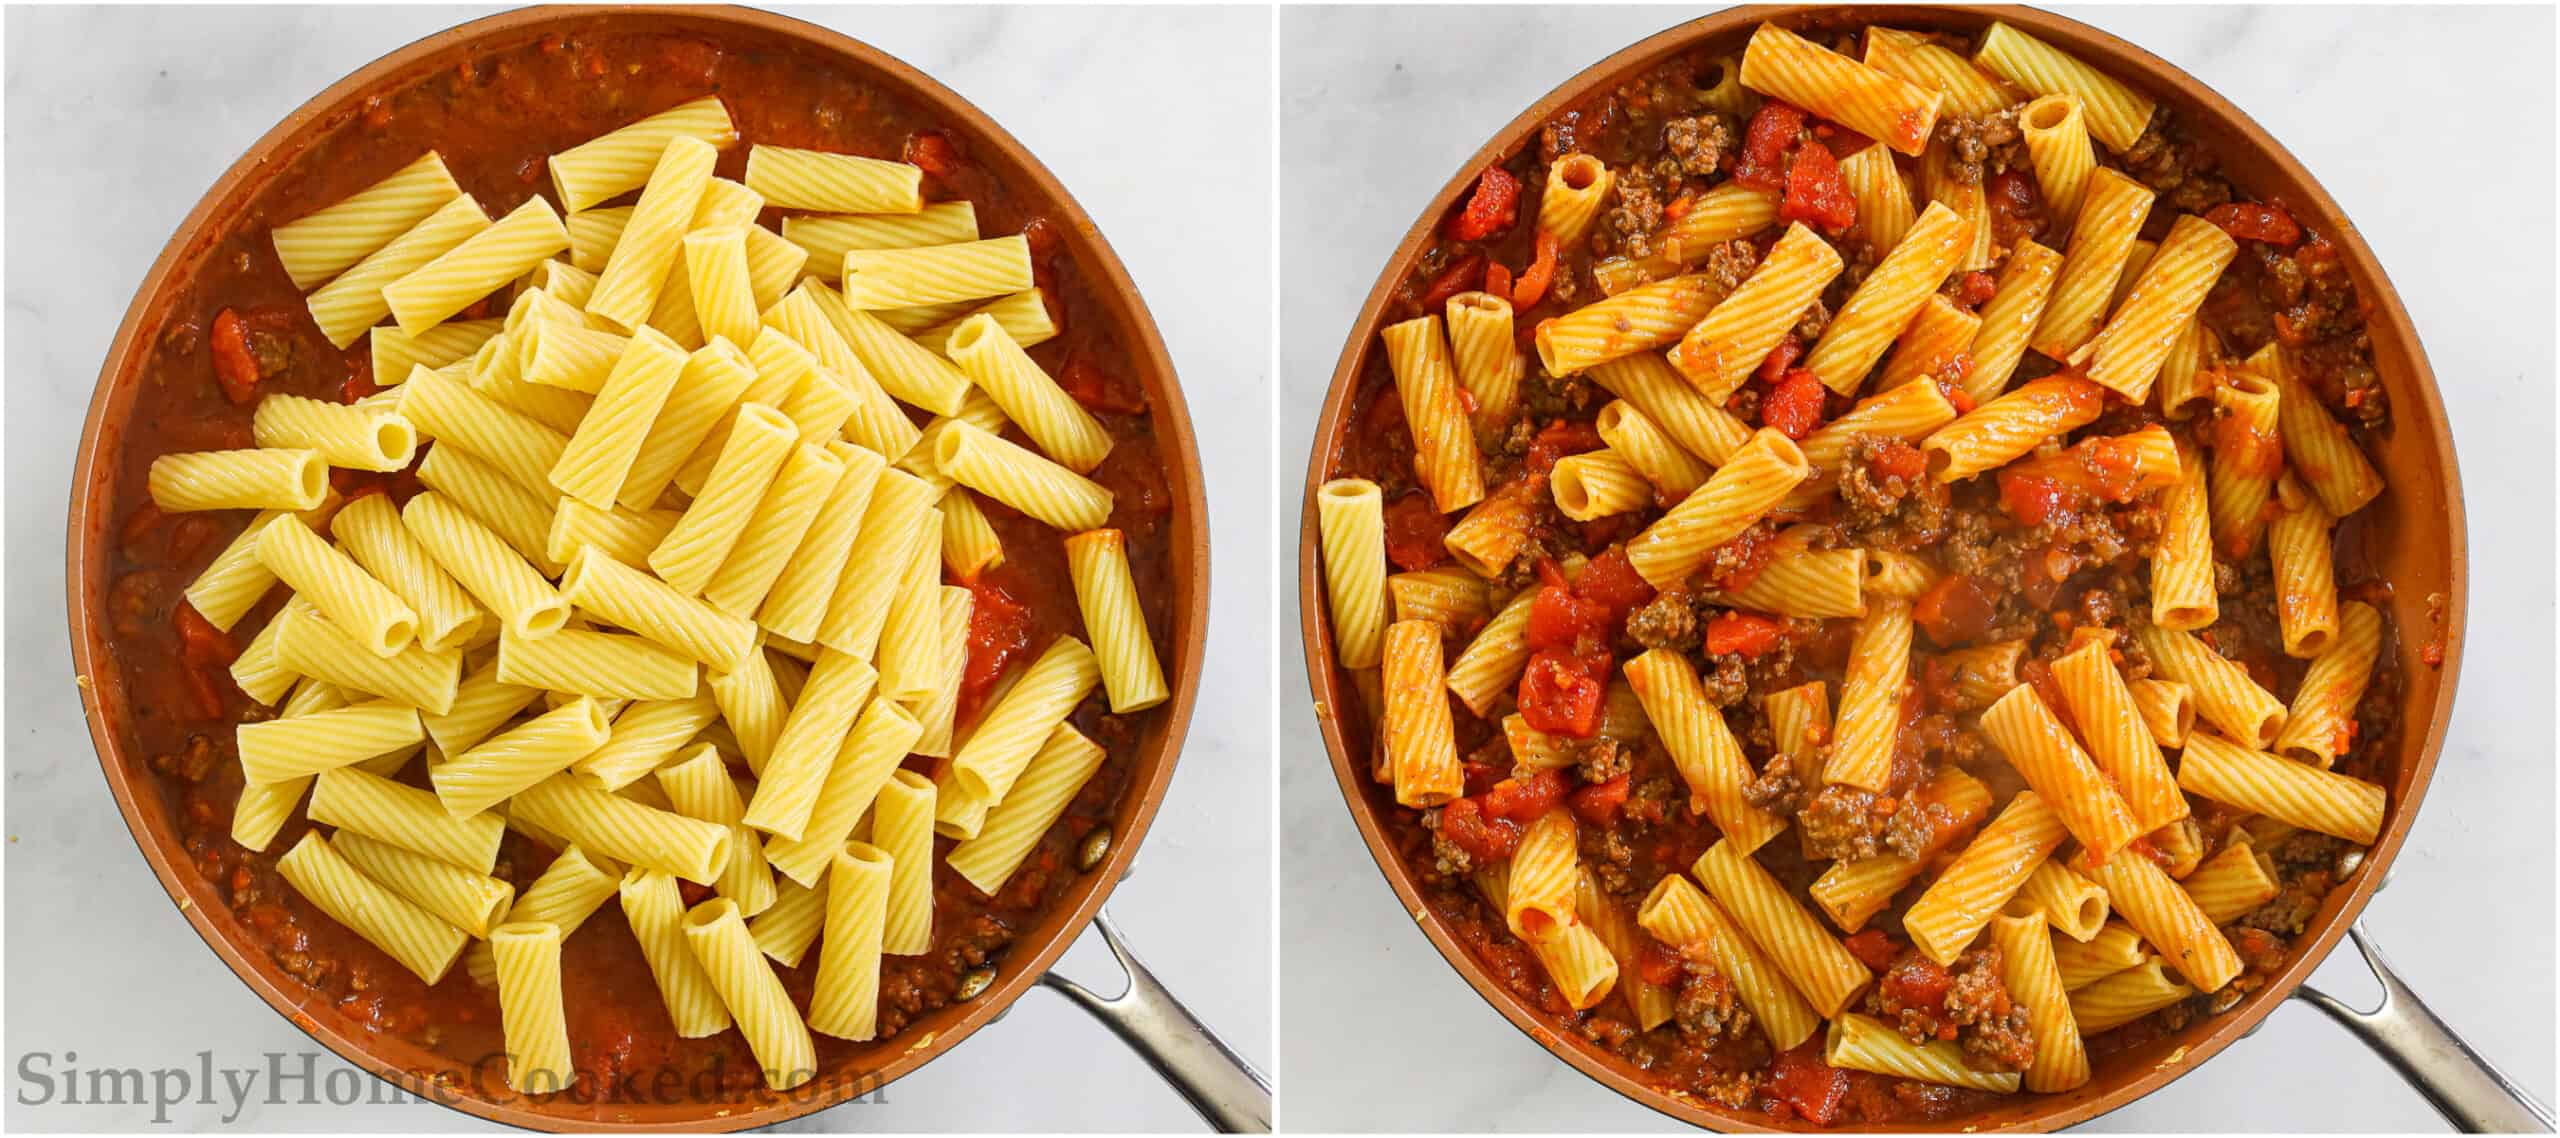 Steps to make Rigatoni Bolognese, including mixing the meat sauce with the pasta and sprinkling it with Parmesan cheese.